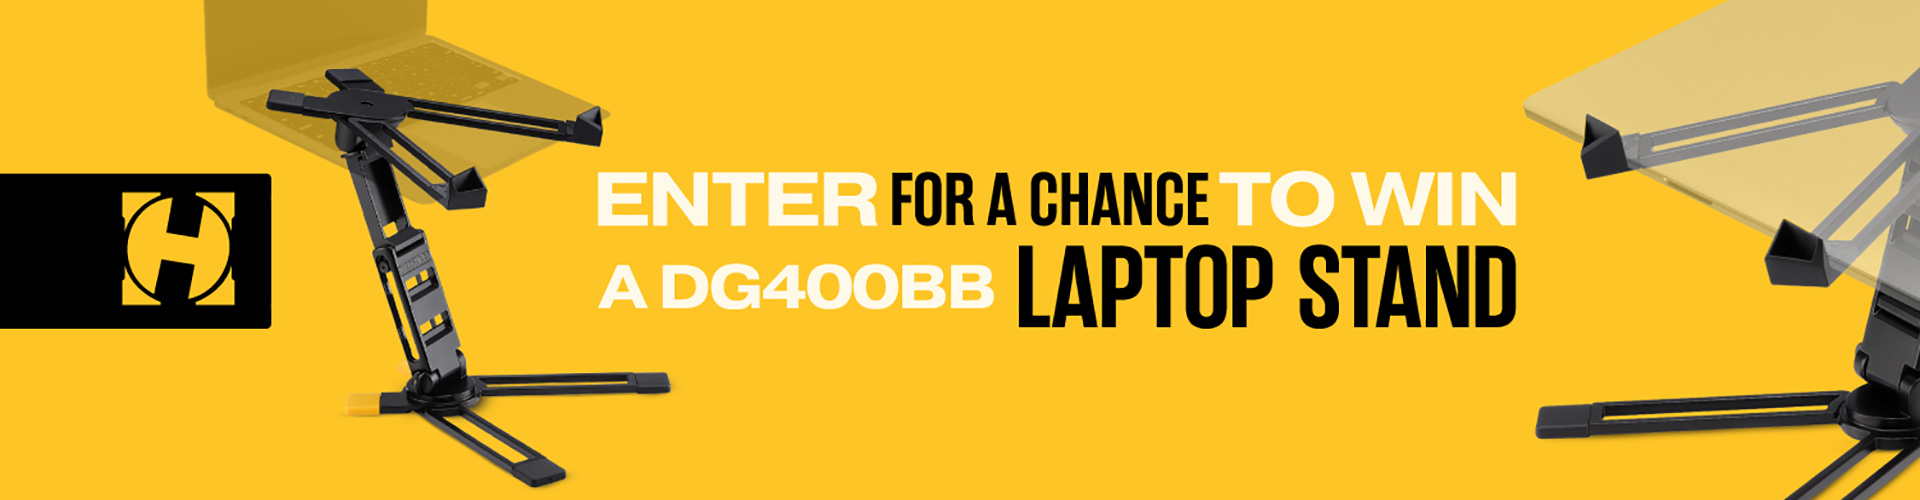 Laptop Stand Sweepstakes